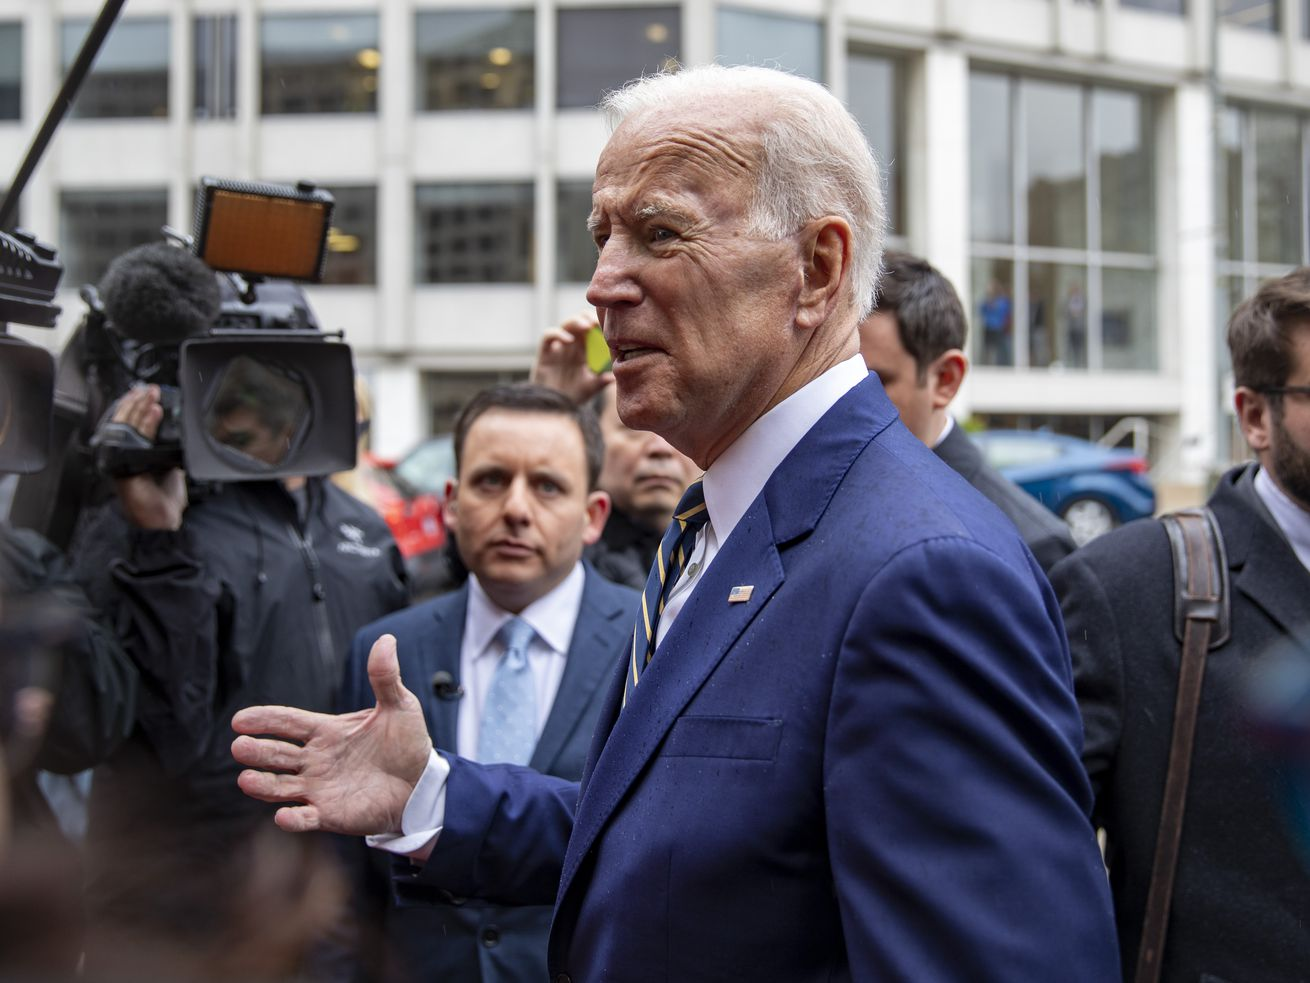 Former Vice President Joe Biden speaks to the media at the International Brotherhood of Electrical Workers Construction and Maintenance conference on April 5, 2019, in Washington, DC.